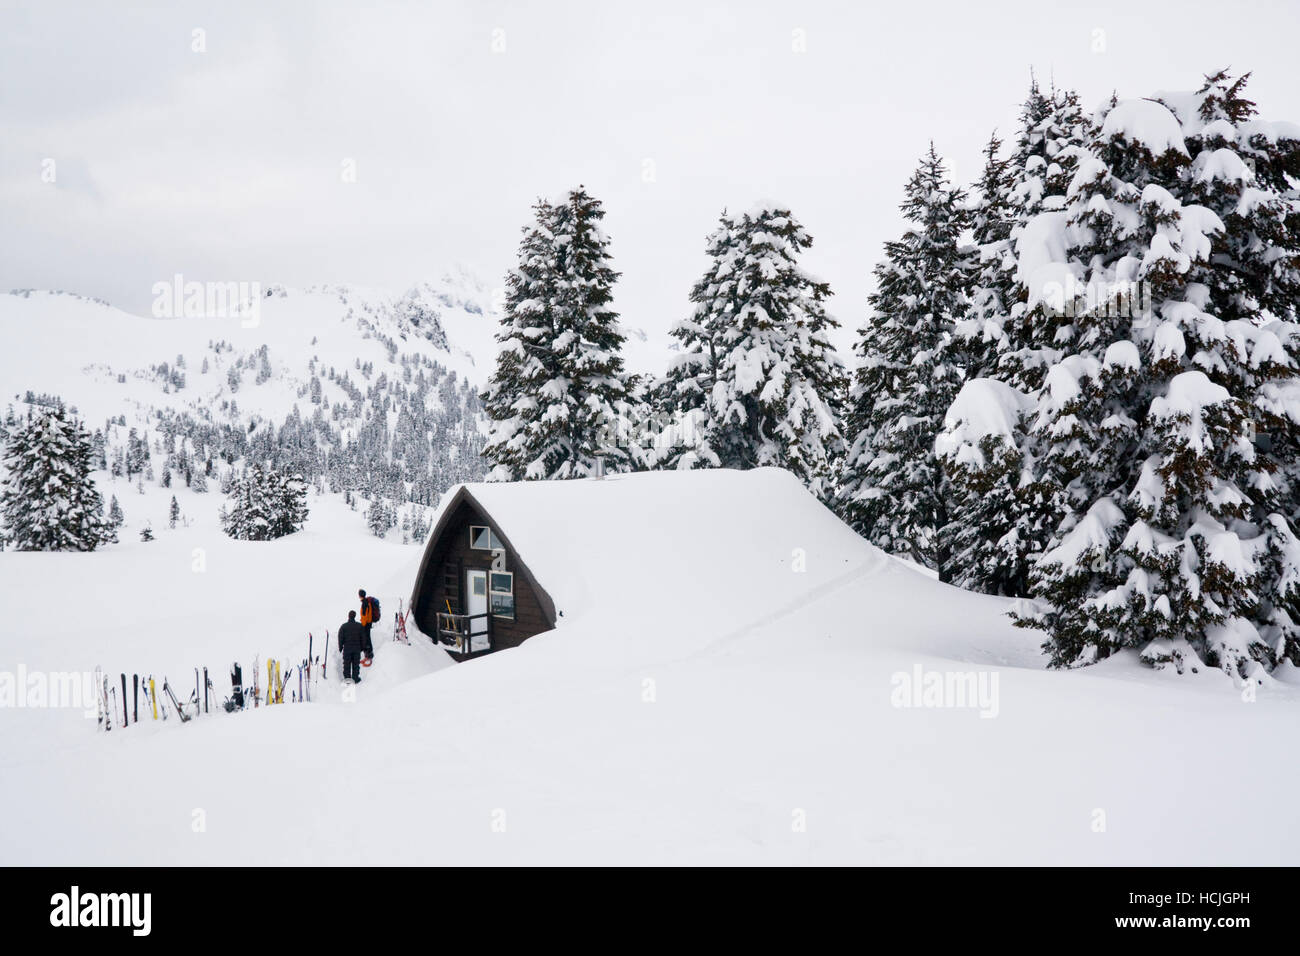 Skiers stand outside the Elfin Lakes Hut, a large shelter in Garibaldi Provincial Park, British Columbia, Canada. Stock Photo